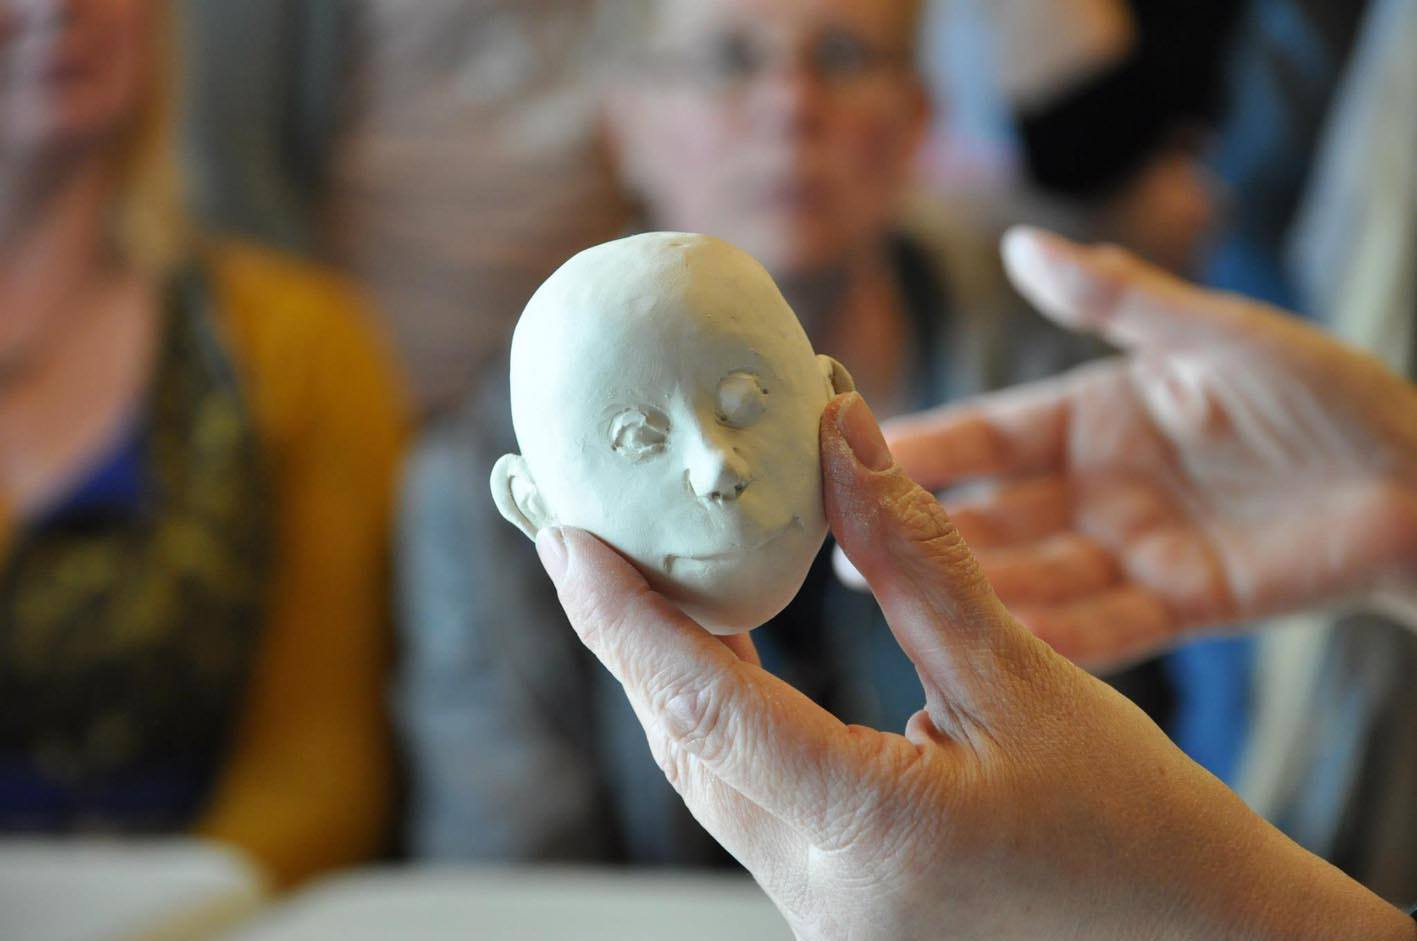 Sculpting a head directly into porcelain without molds